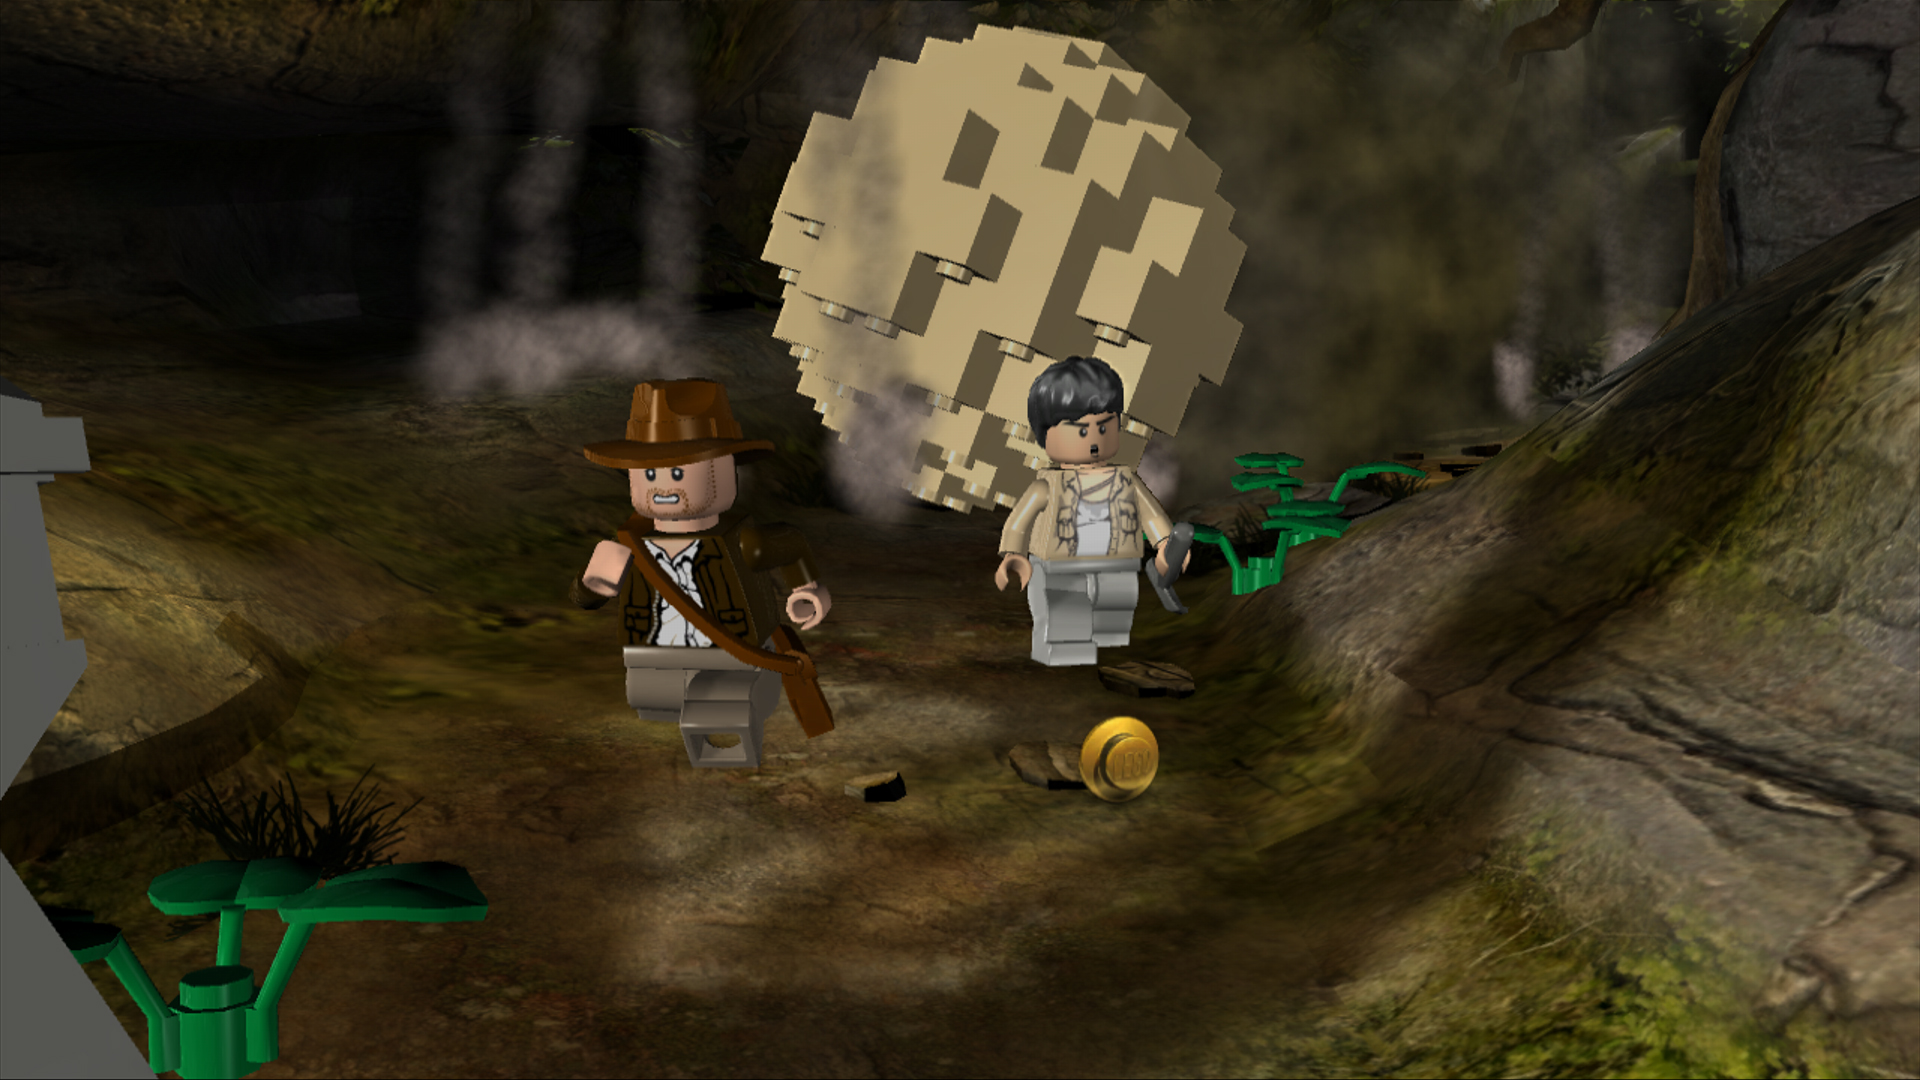 Indiana Jones running from a large rolling boulder.